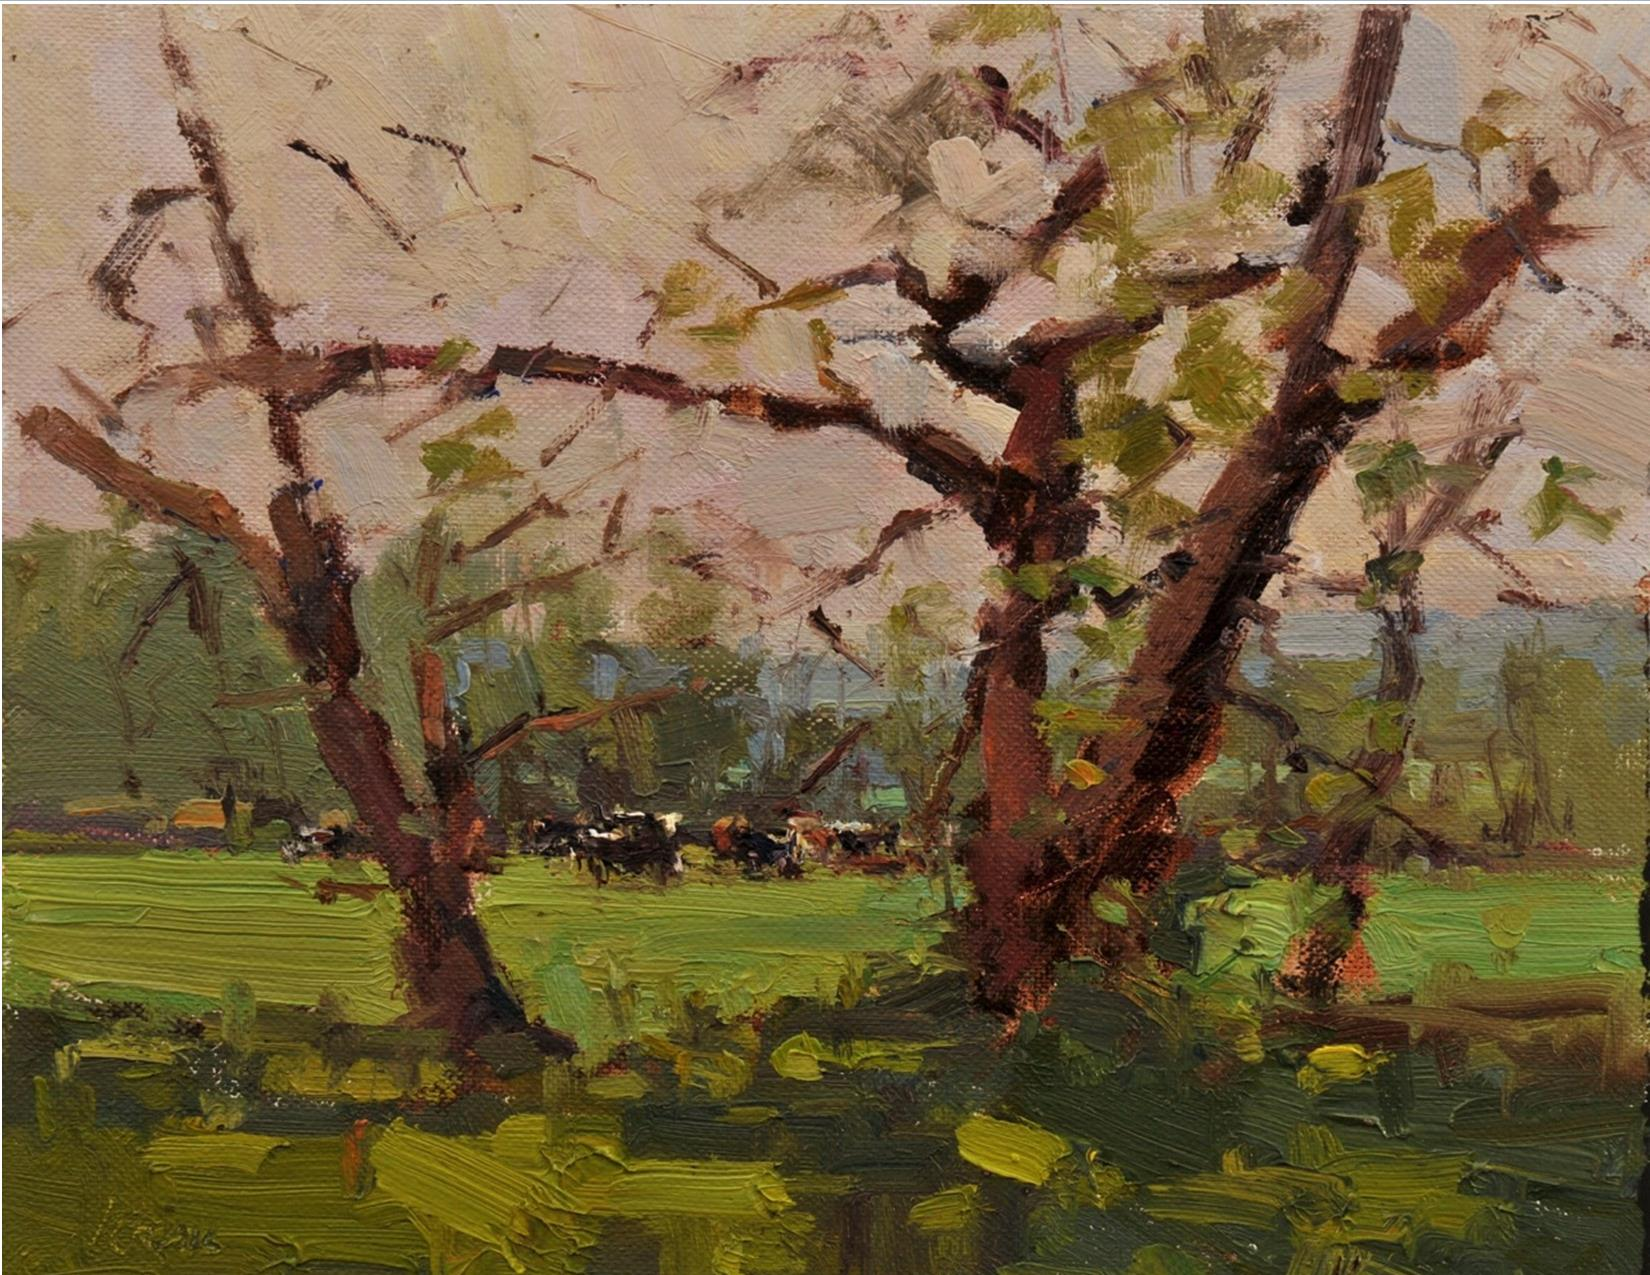 painting of trees with cows in the background